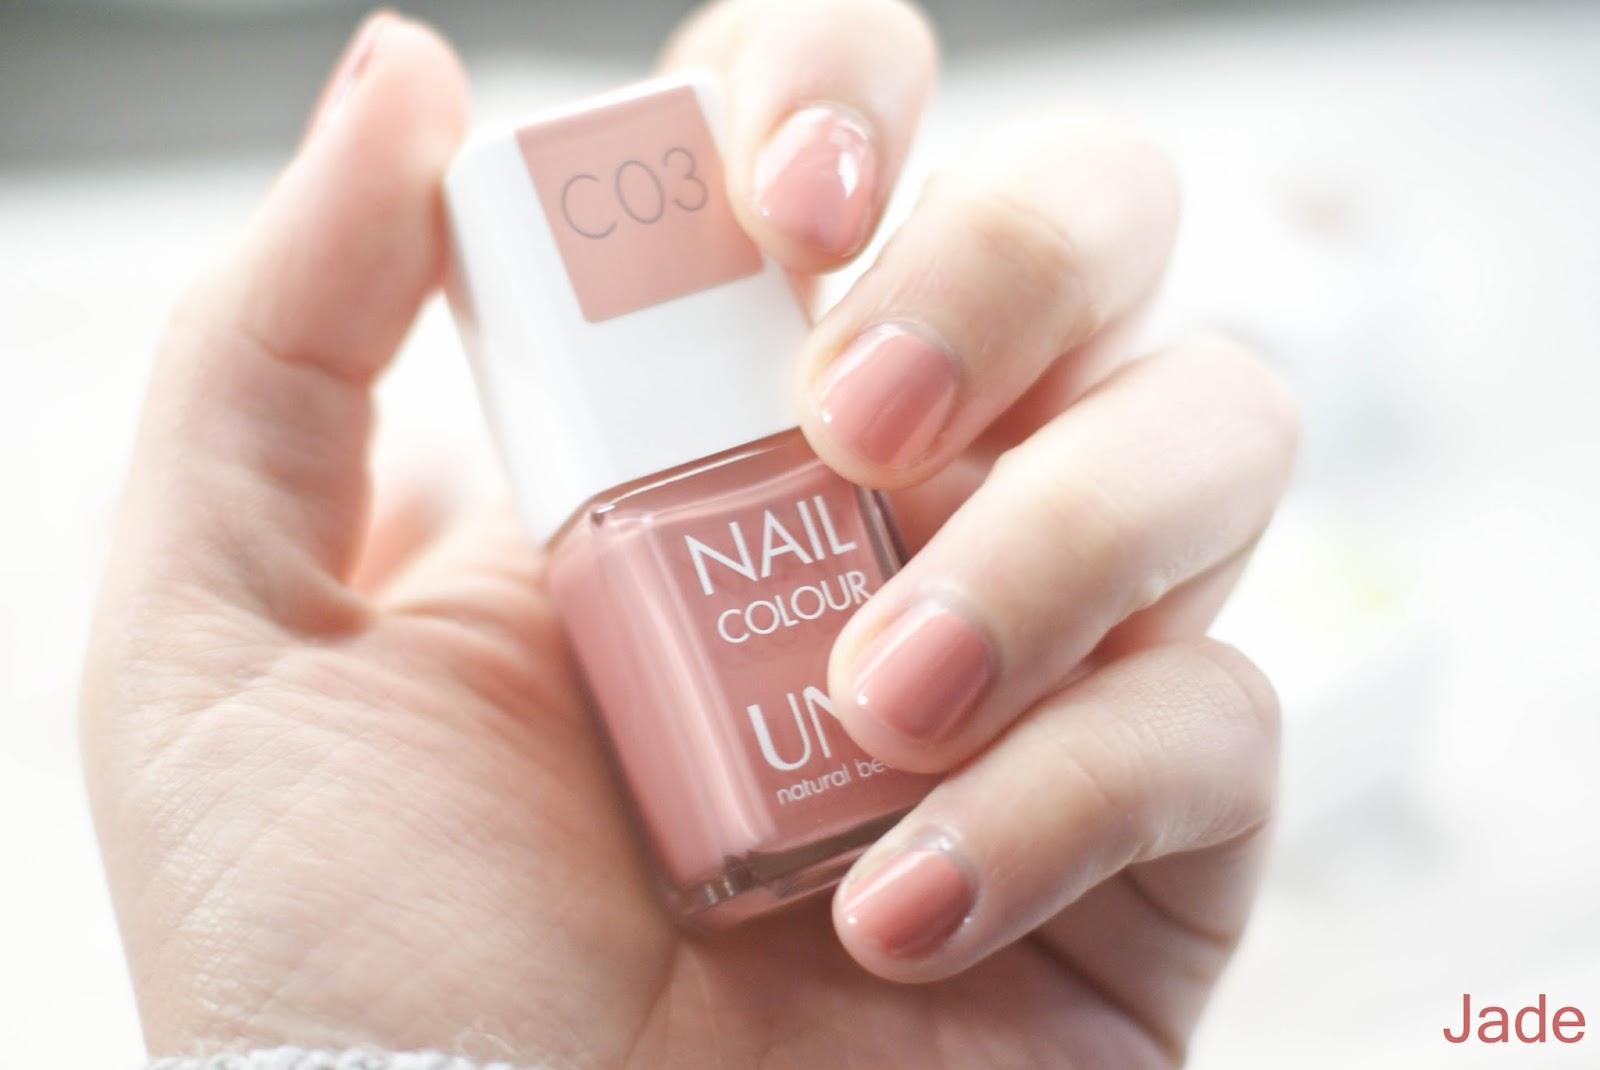 vernis une beauty C03 rose